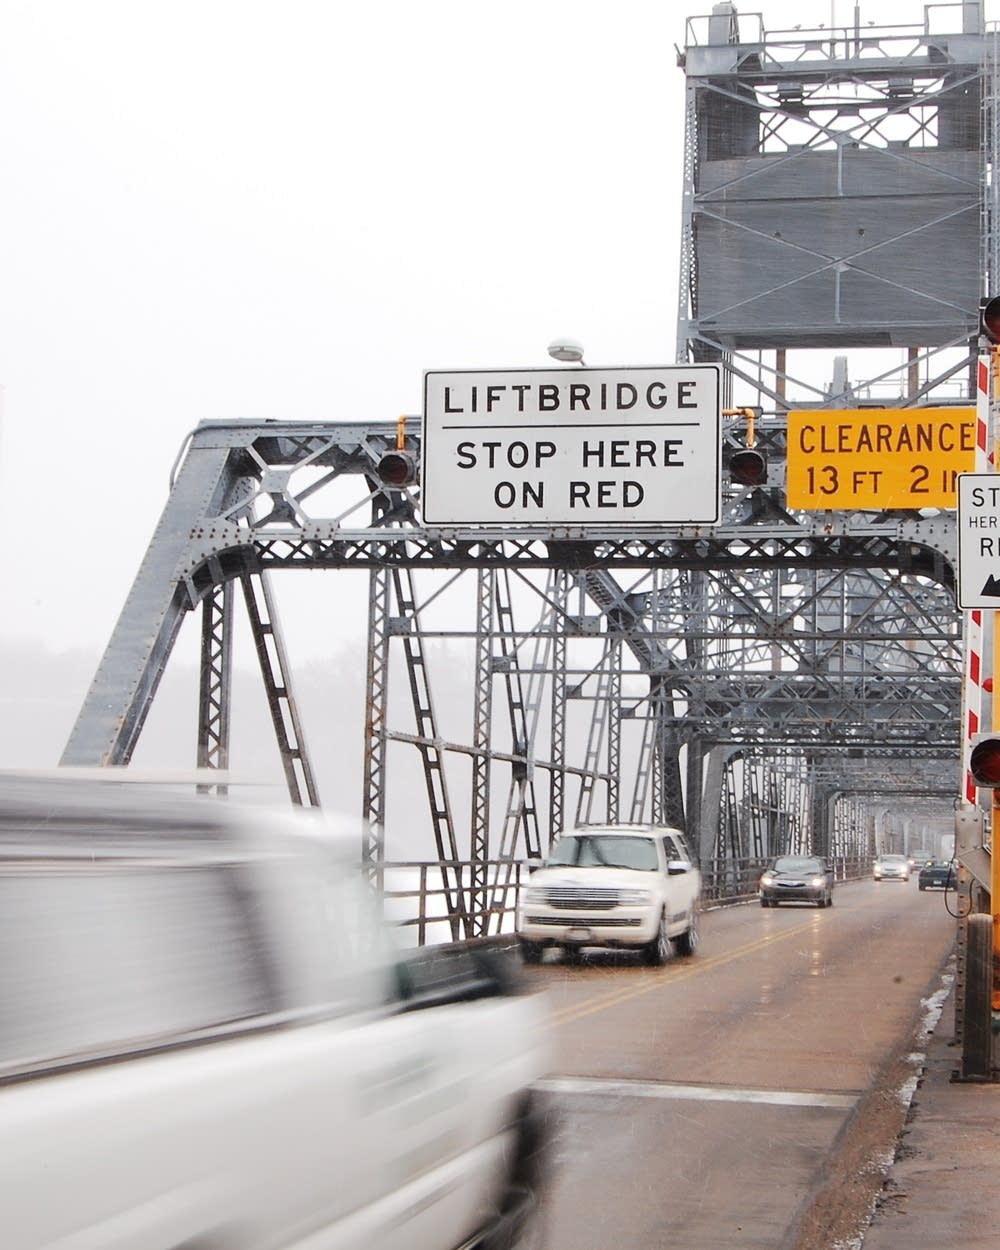 HDR to design St  Croix bridge | MPR News